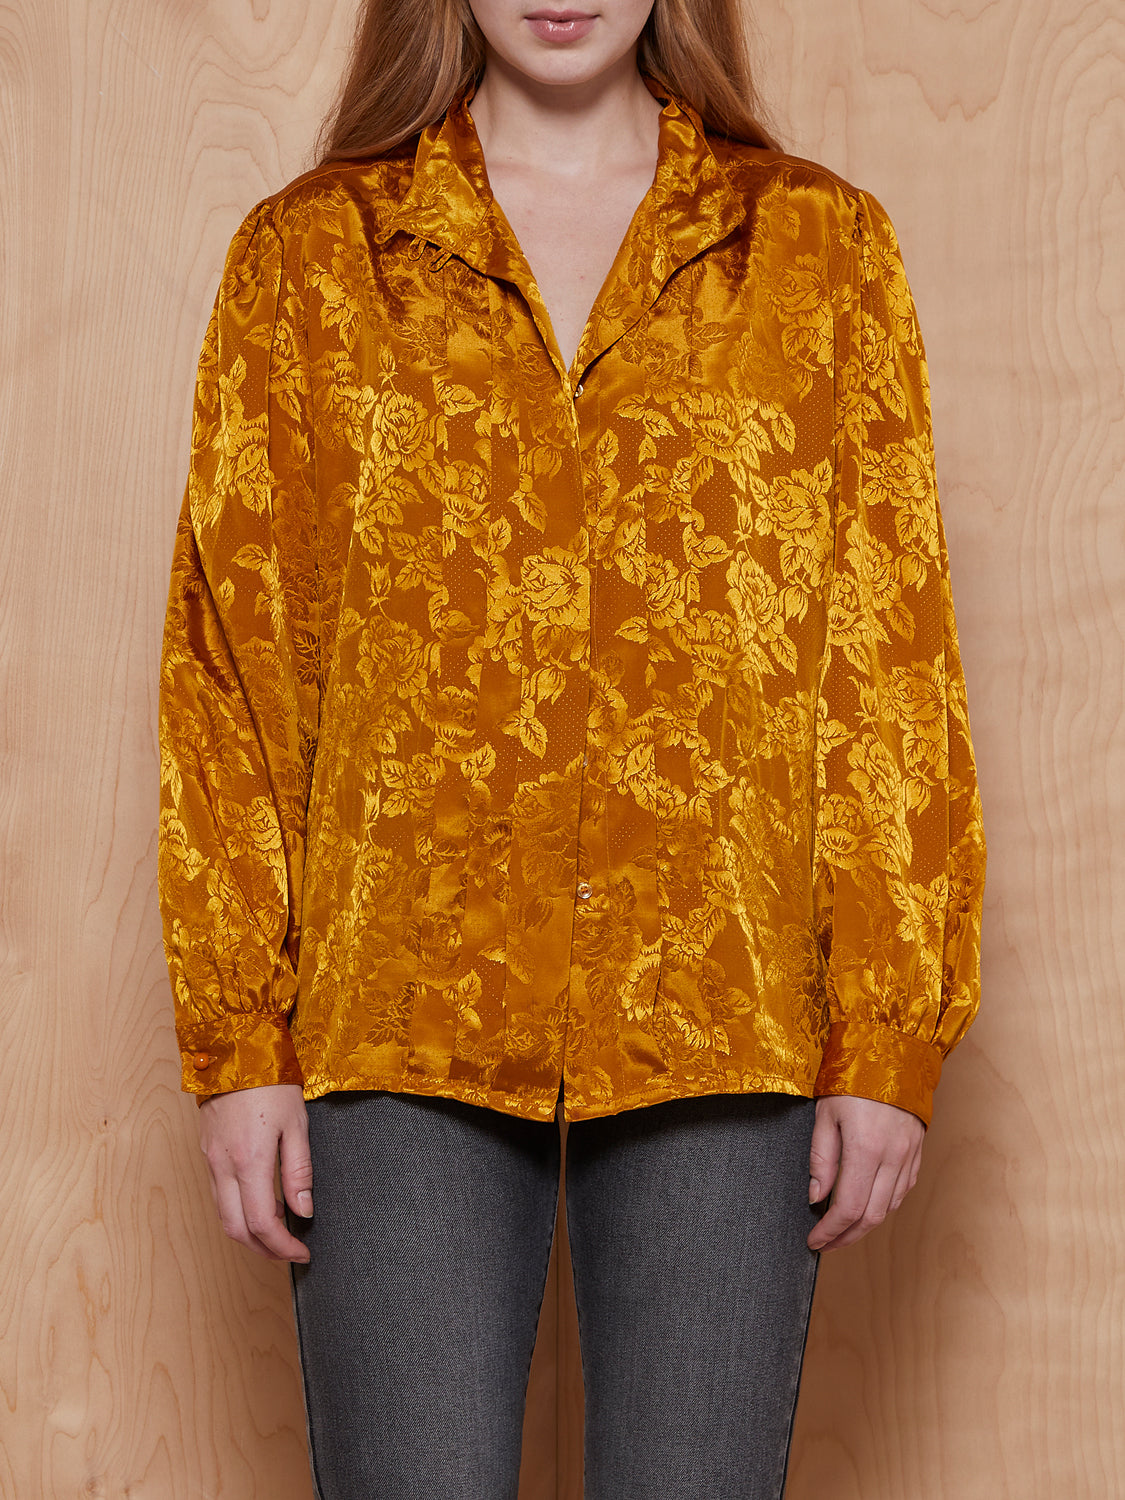 Vintage Gold Print Button Up Blouse